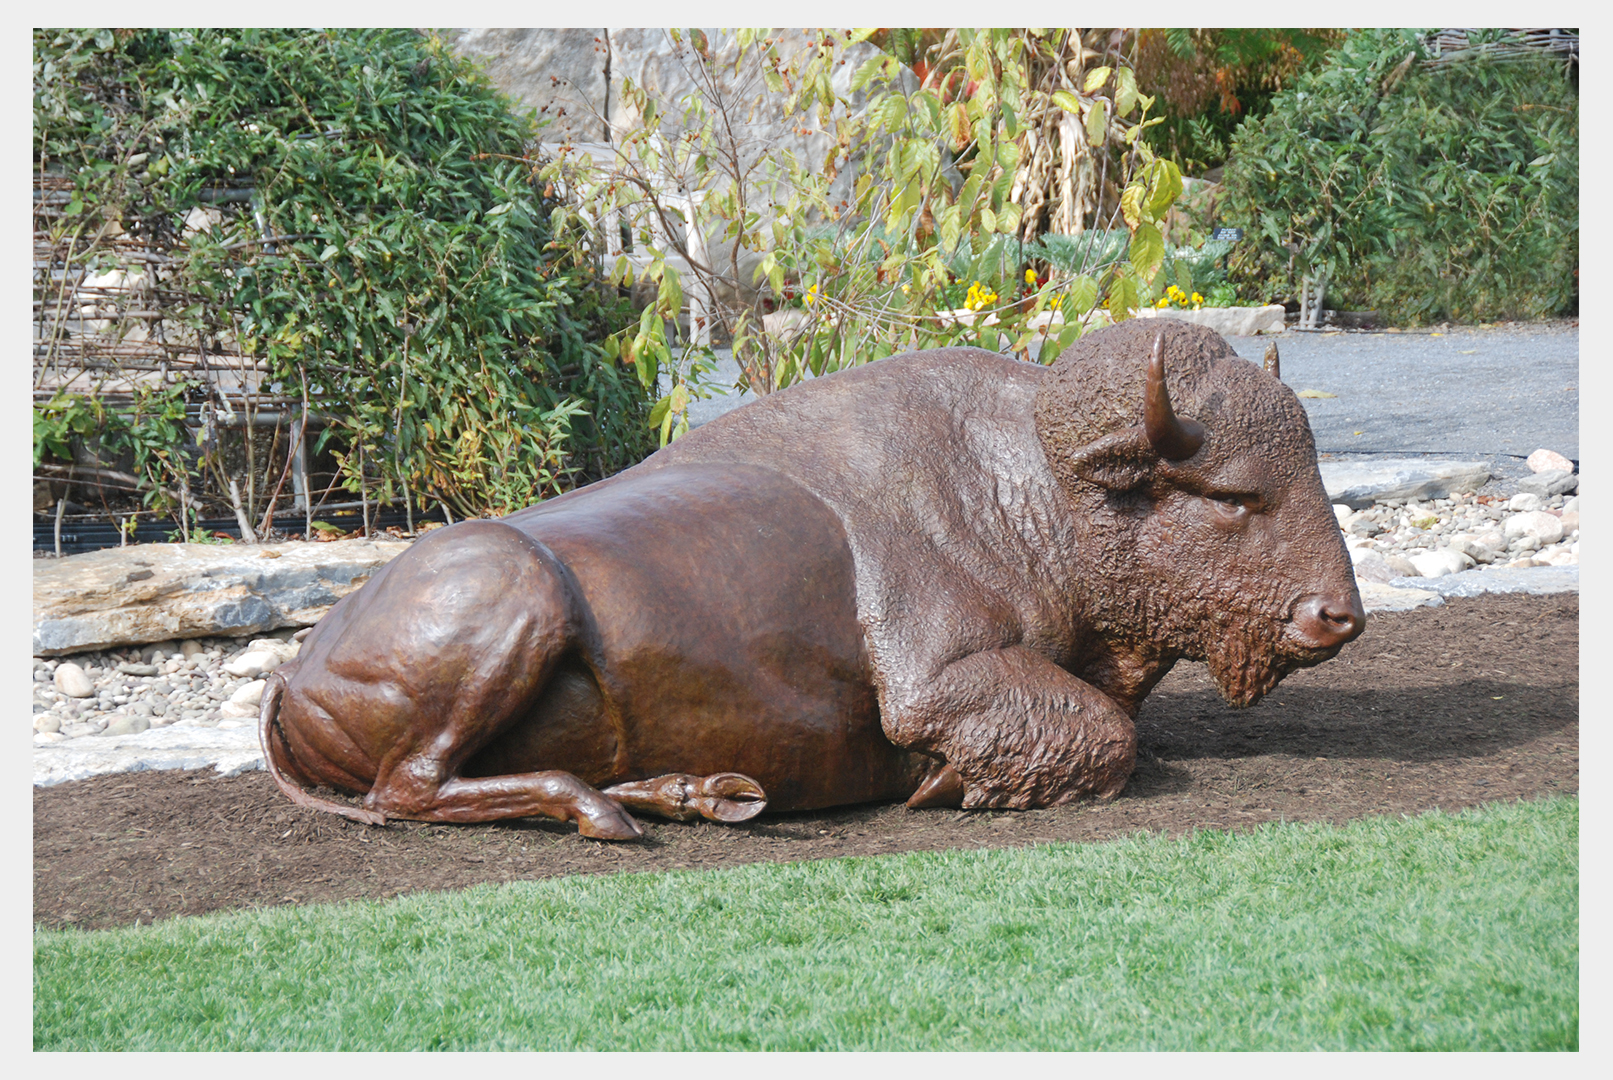 Life-size realistic bronze sculpture of a reclining buffalo in the Arboretum at Penn State University